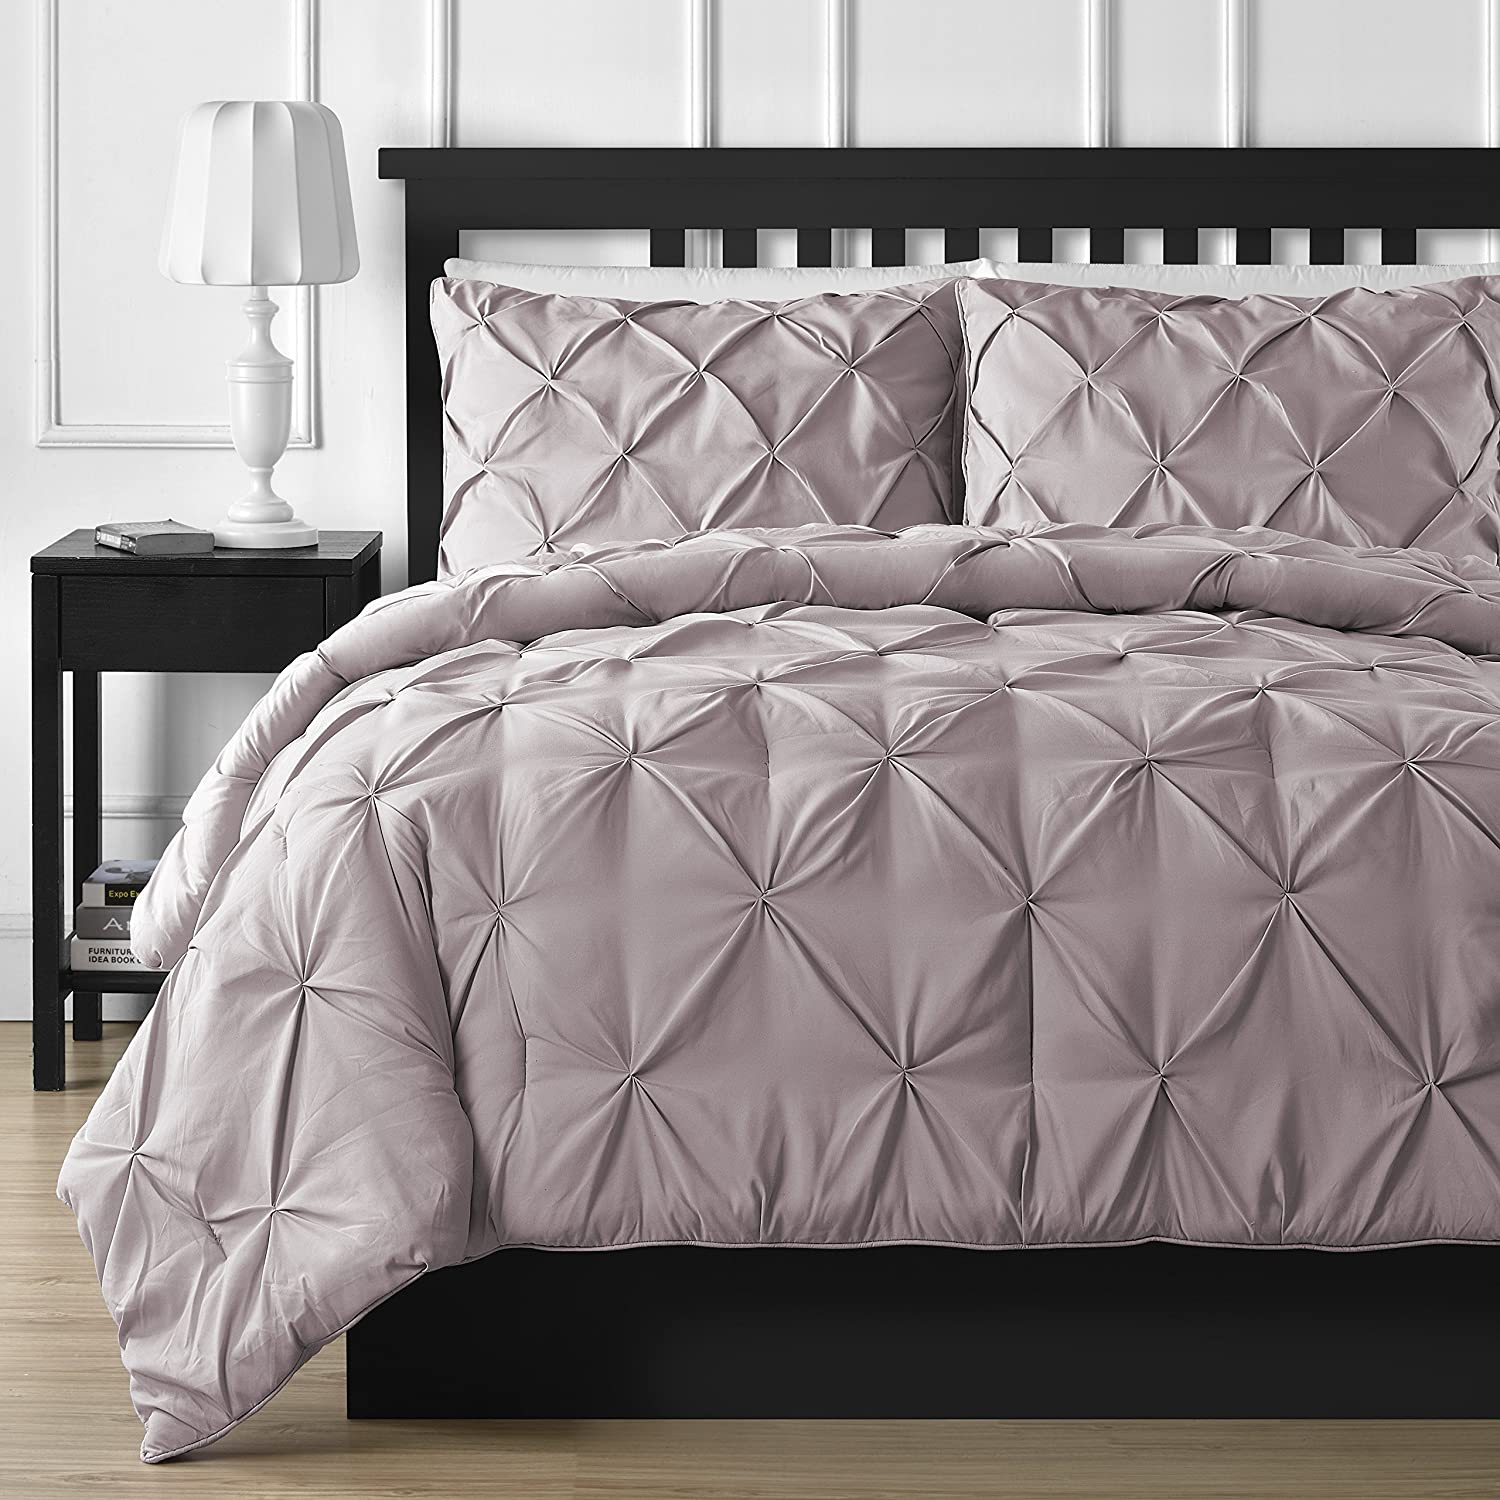 Bedding 3-piece Pinch Pleat Comforter Set